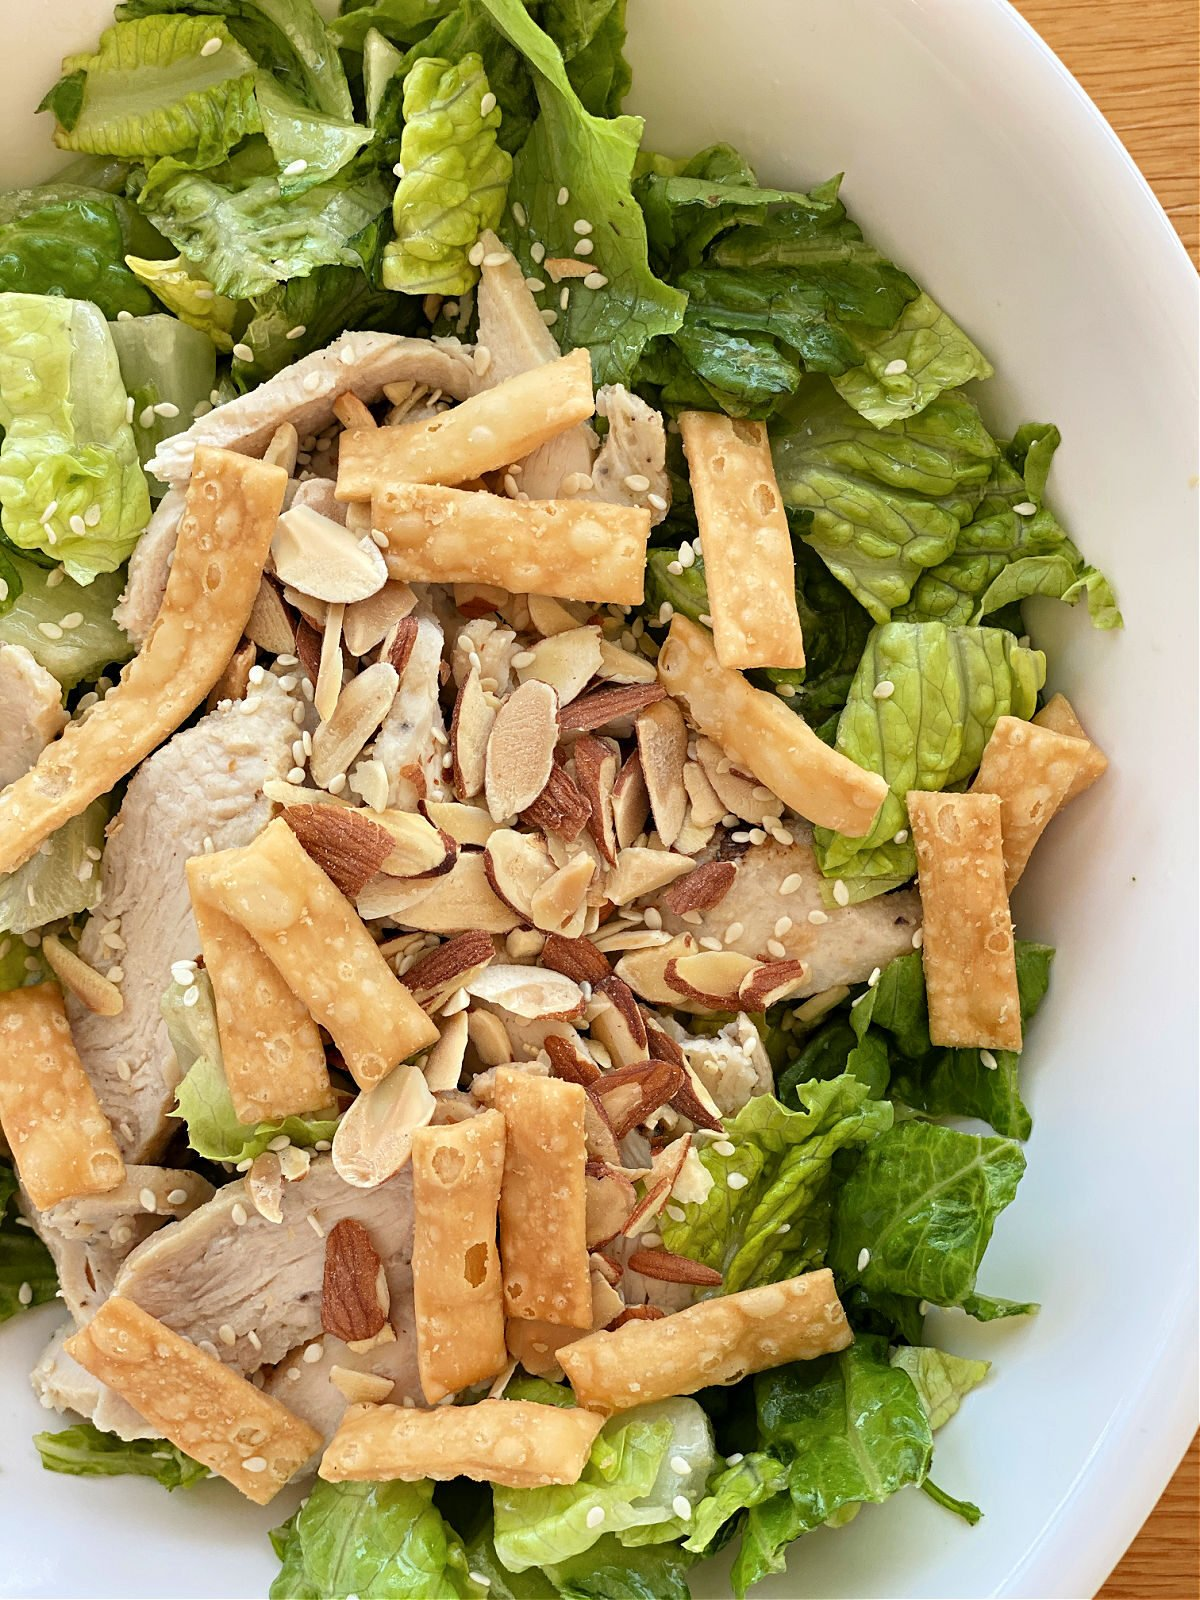 Close up view of Panera's Asian Sesame Salad with crispy wontons and slivered almonds.